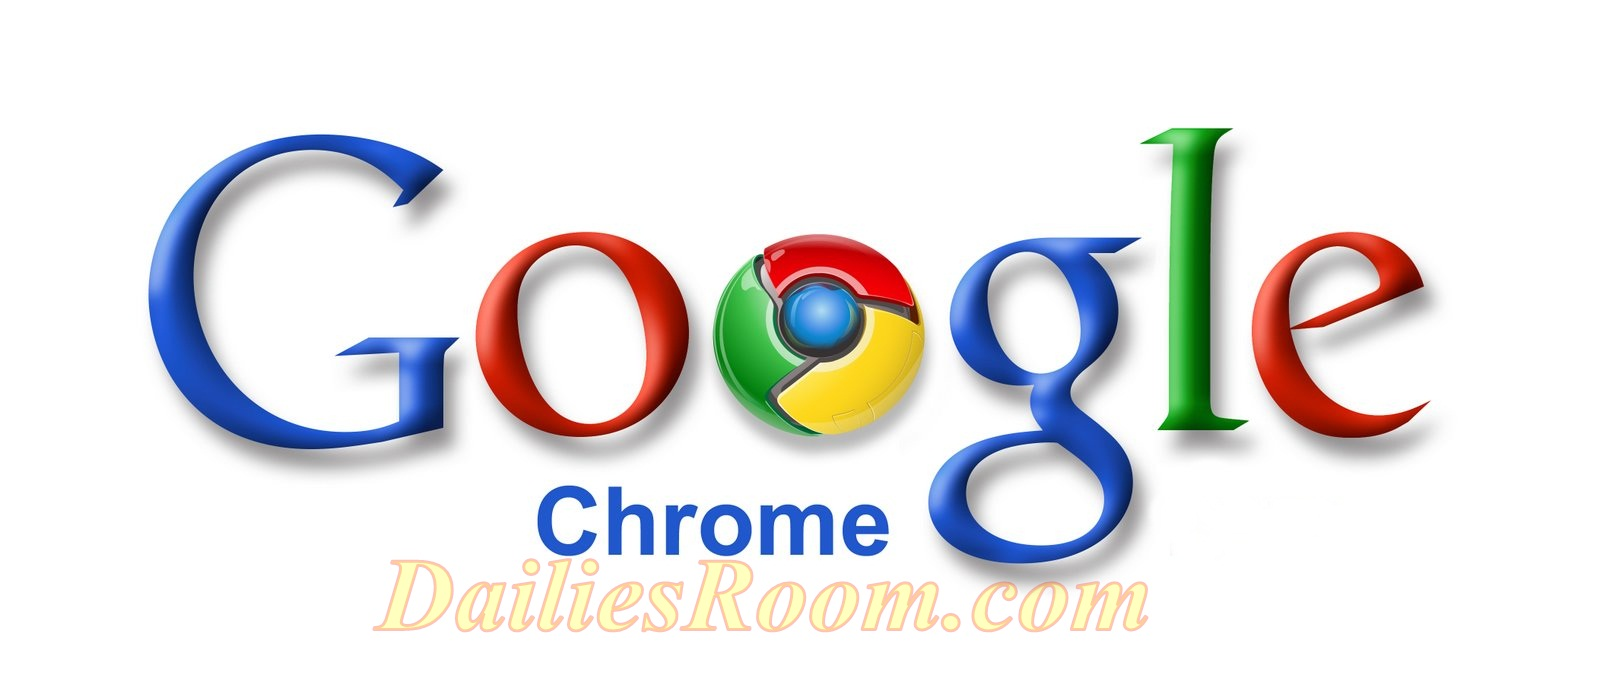 Download and Install Google Chrome Browser App free for android - Google Chrome app for Fast and secure browsing